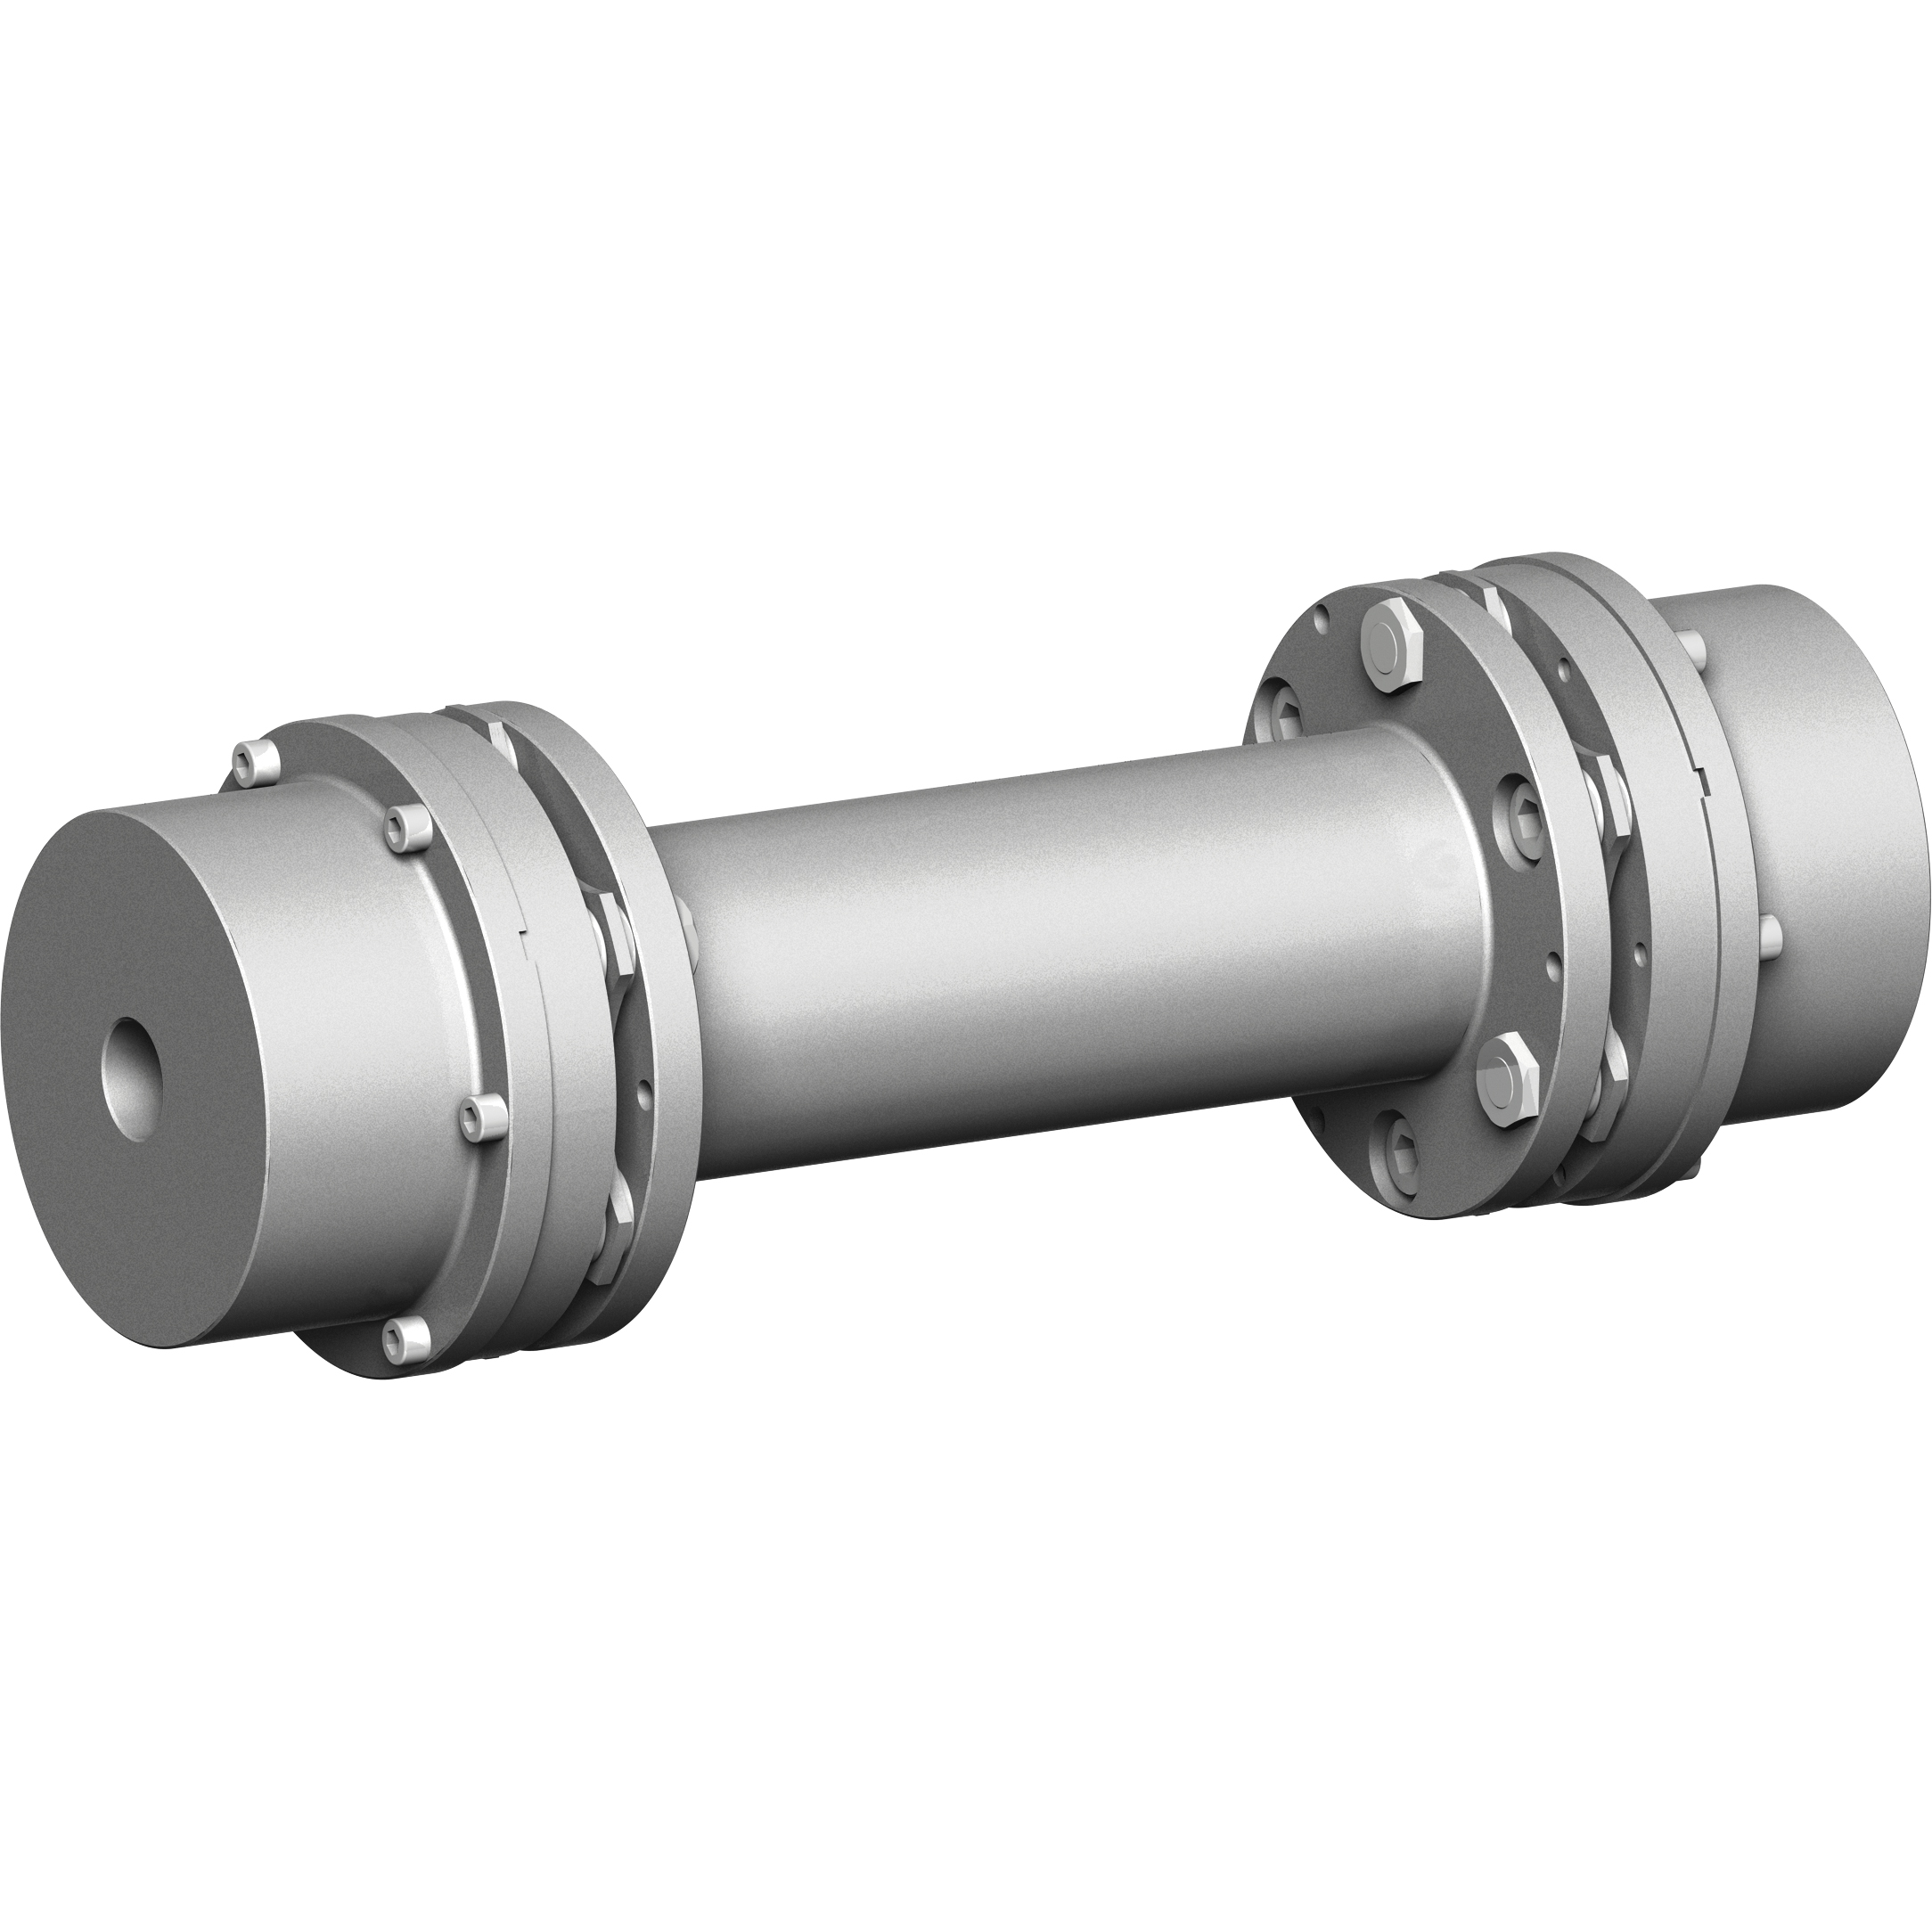 Rigid Couplings - DISCFLEX